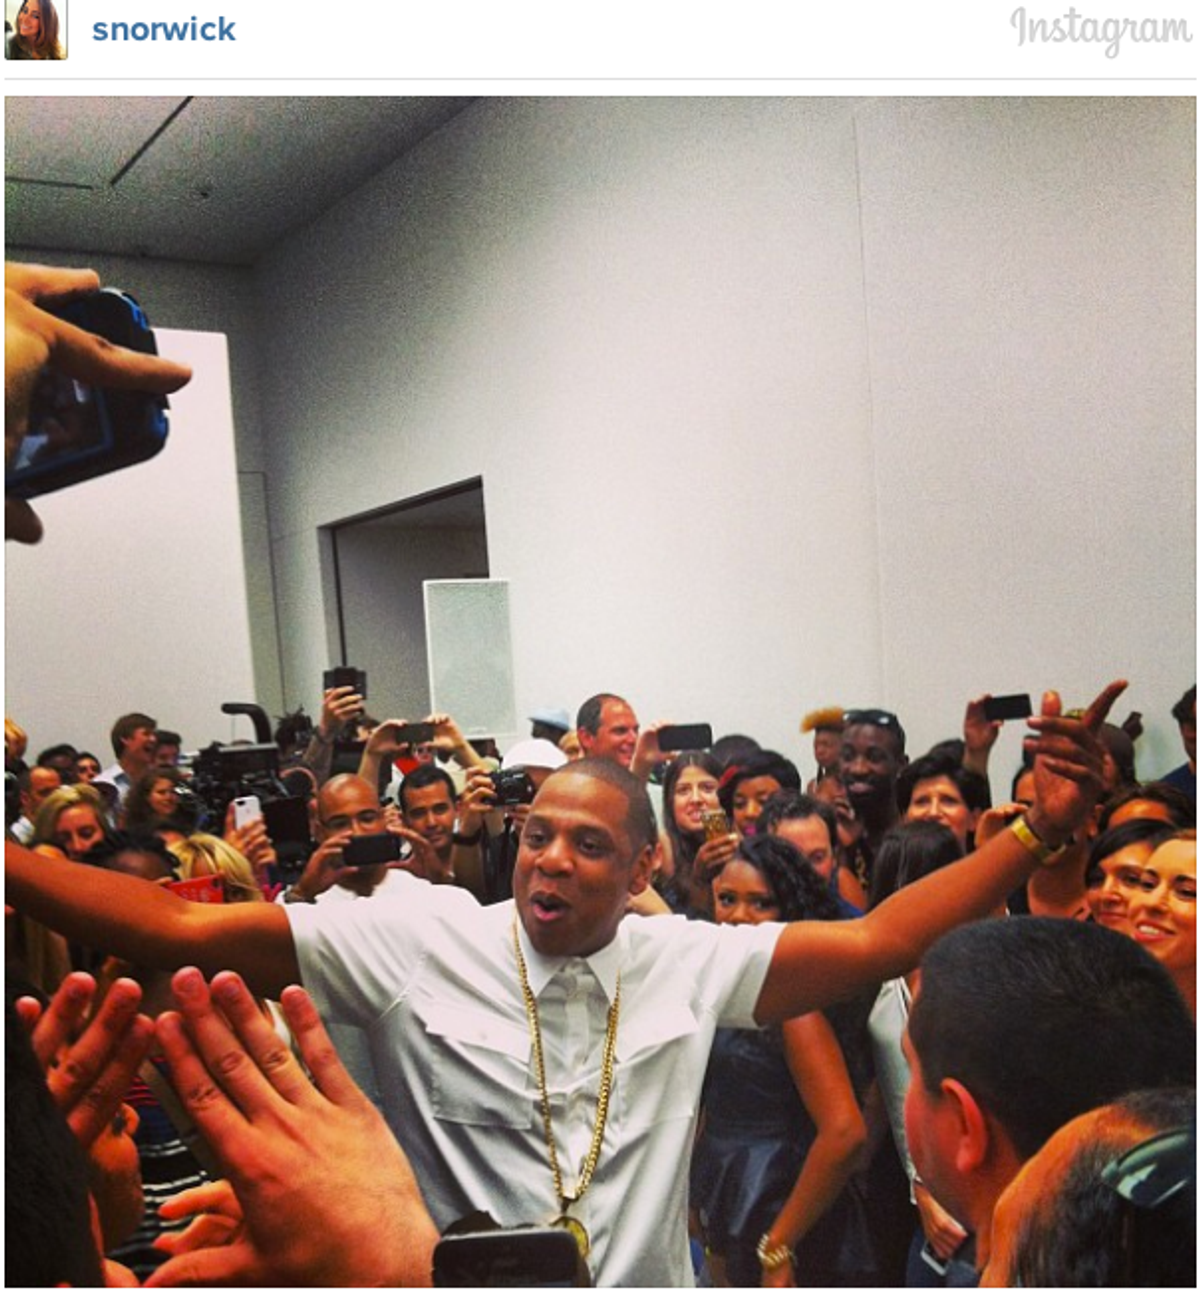 """Jay-Z films video for """"Picasso Baby"""" at Pace Gallery in NYC  (Instagram)"""